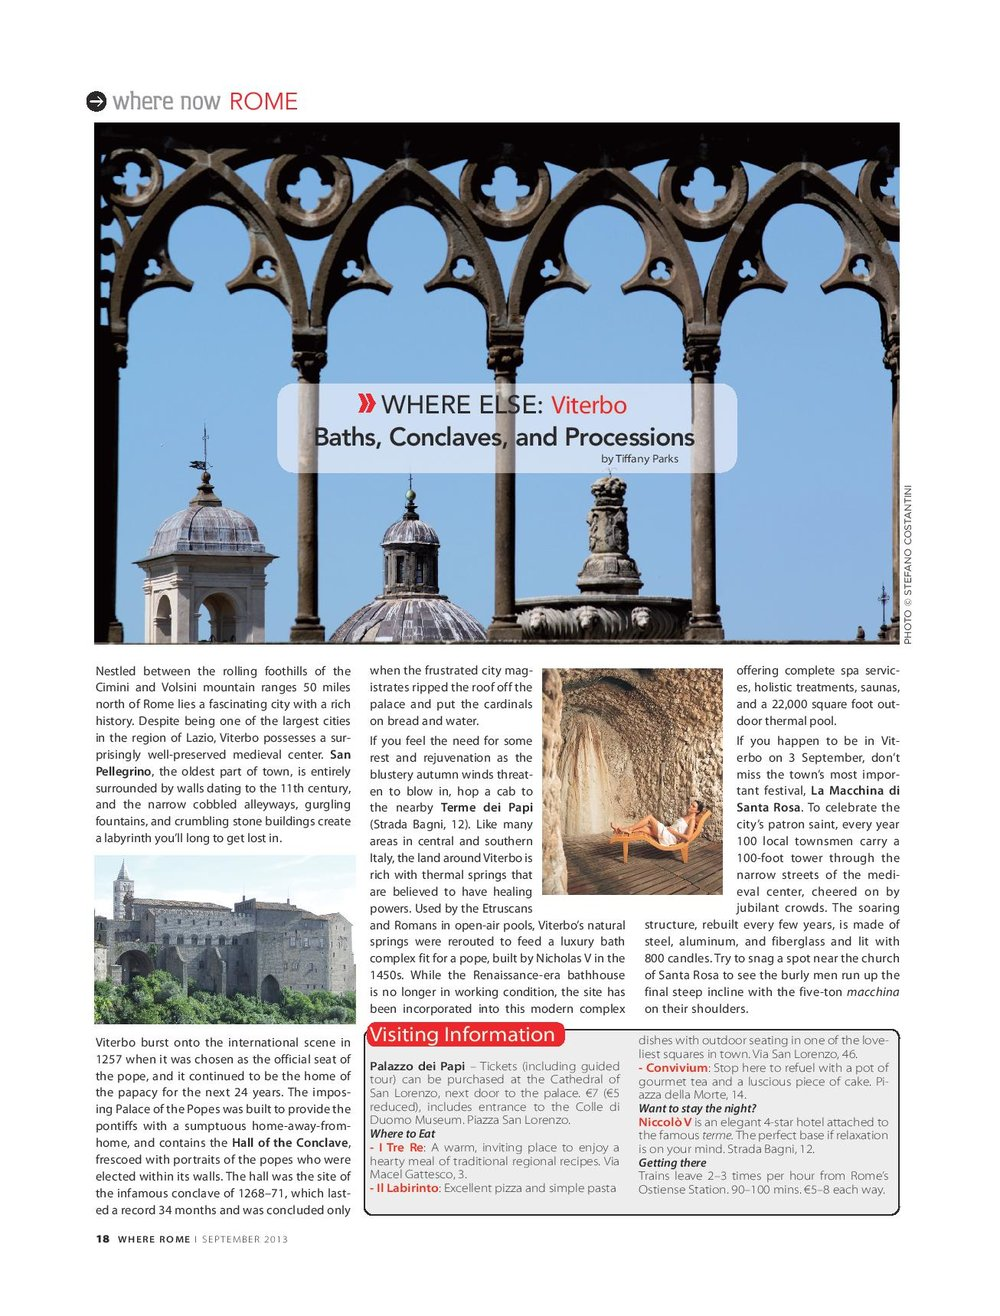 WhereElse Viterbo, Sept 2013-page-001.jpg